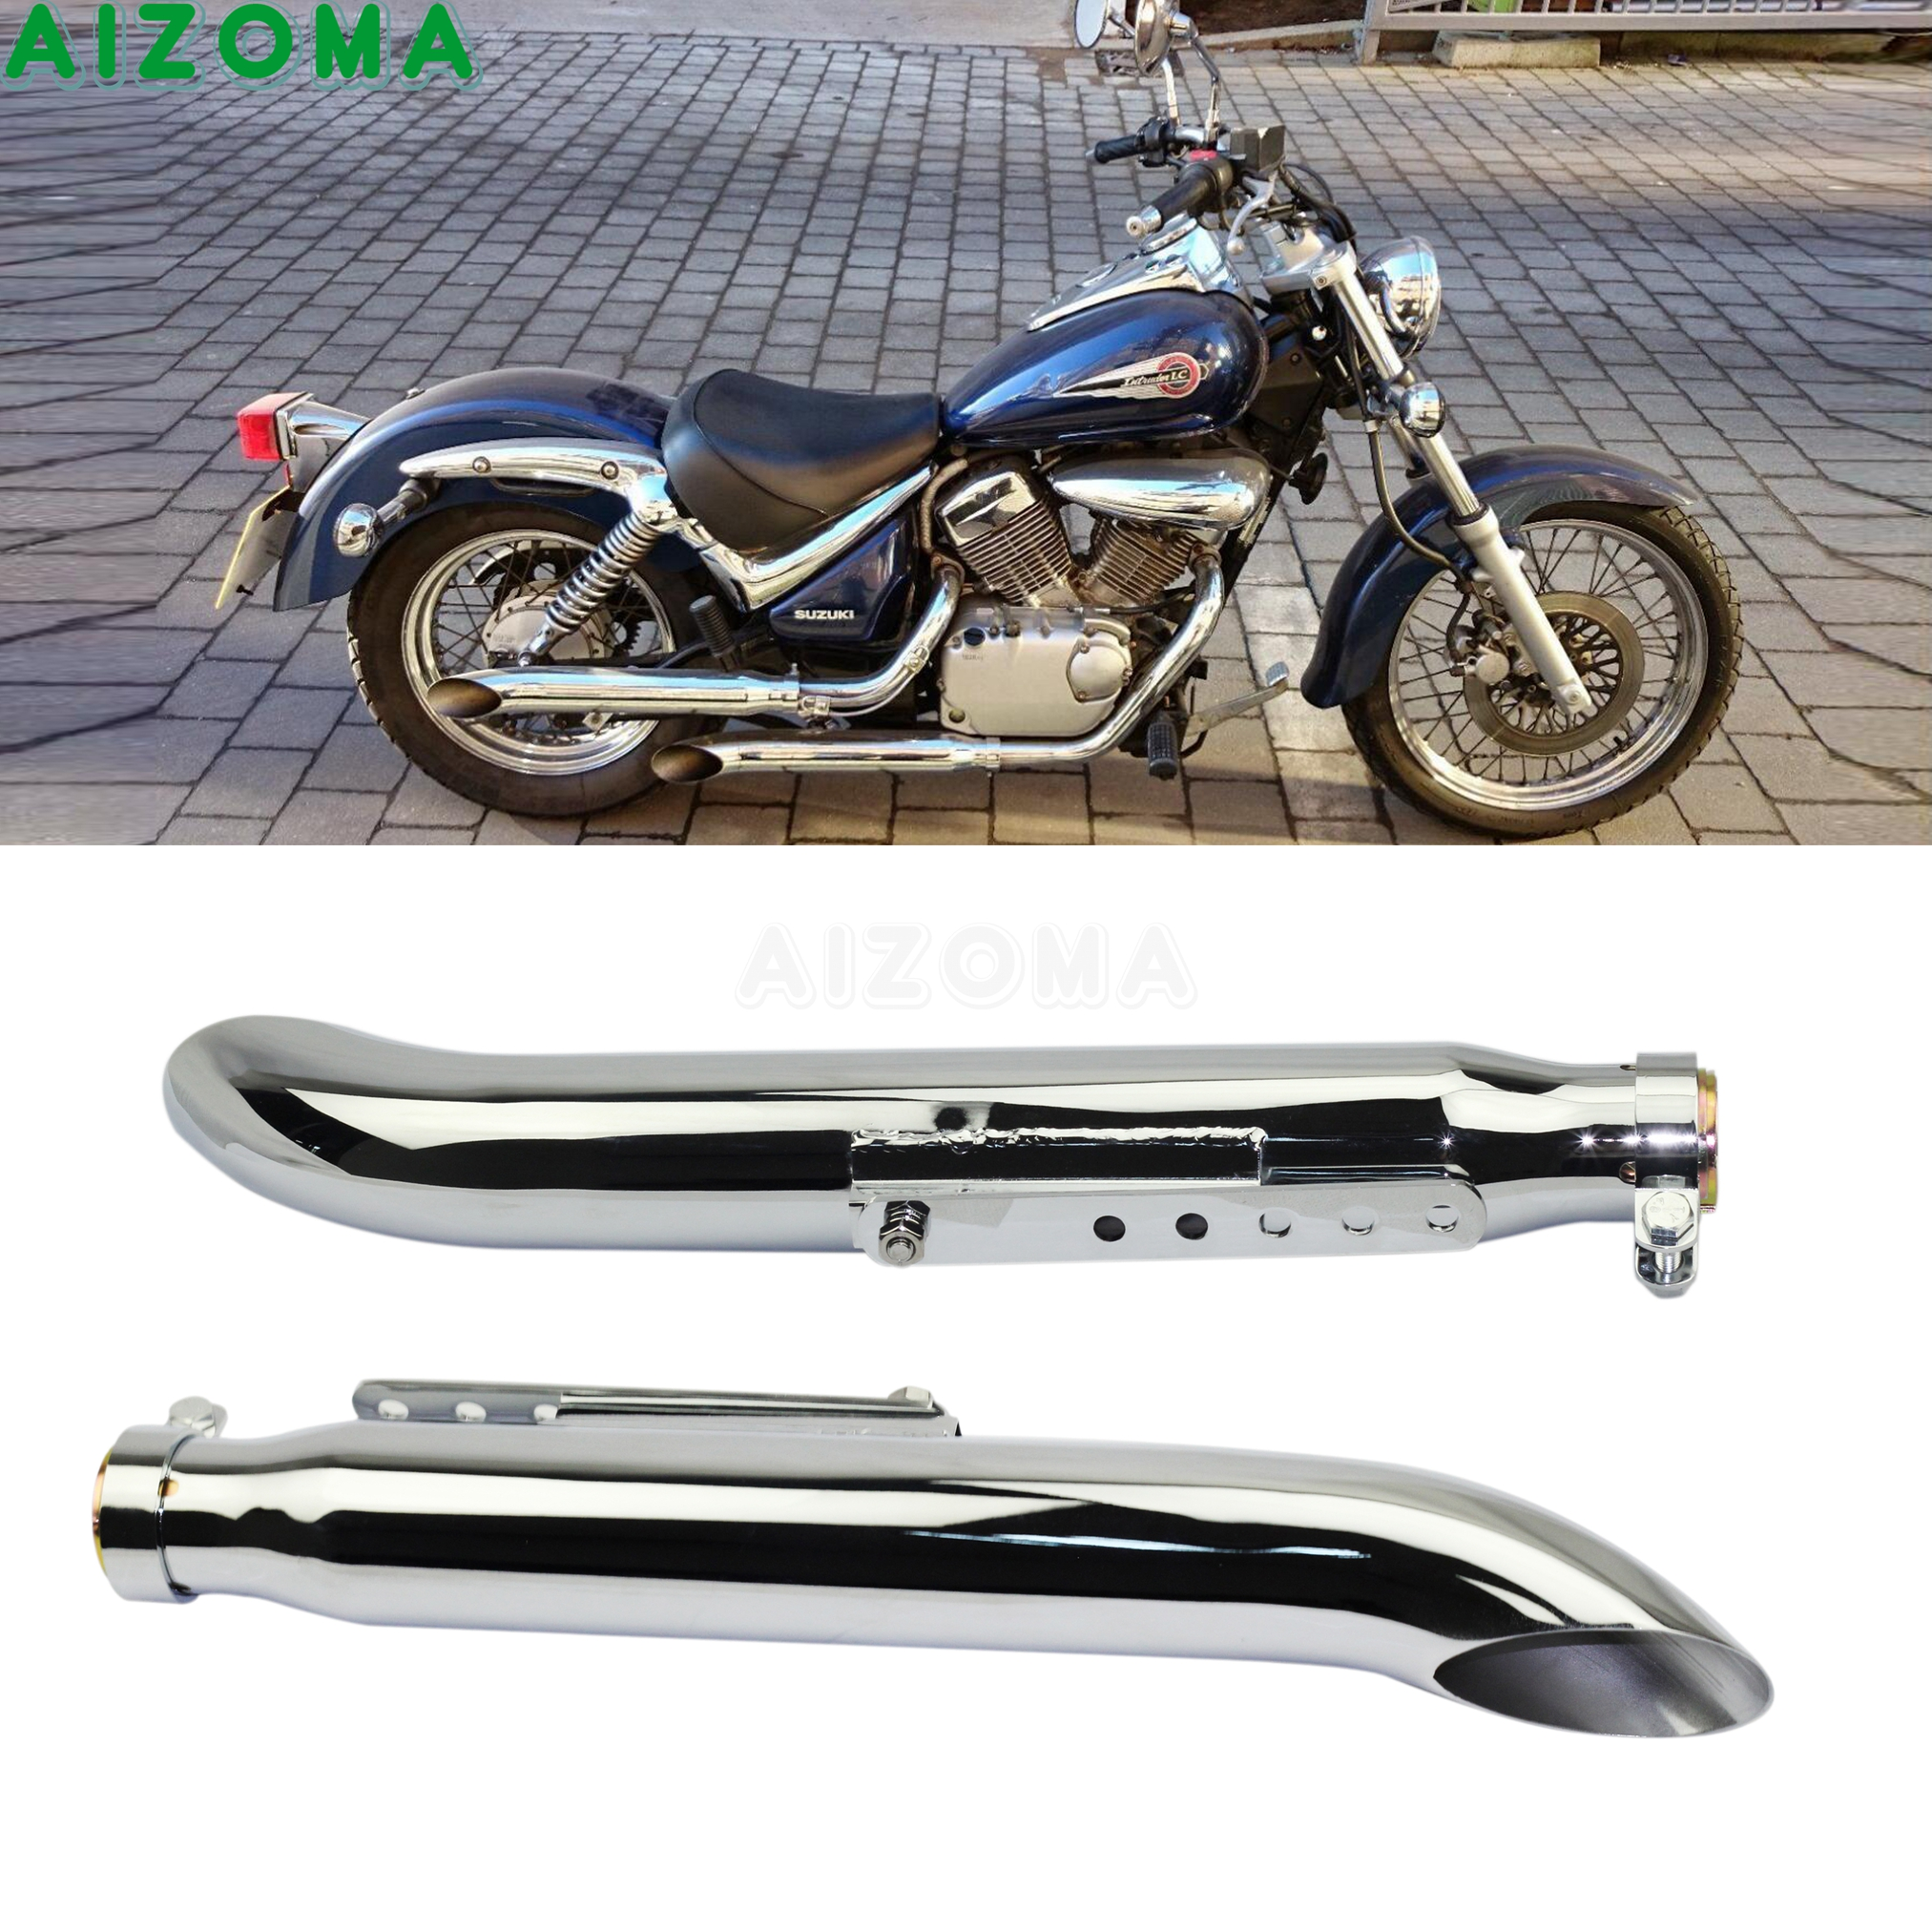 1 Pair Motorcycle Exhaust Muffller Pipe for Harley <font><b>Suzuki</b></font> <font><b>VL</b></font> 125 800 <font><b>1500</b></font> Intruder Bobber Chrome Tapered Turn Out Iron Silencer image